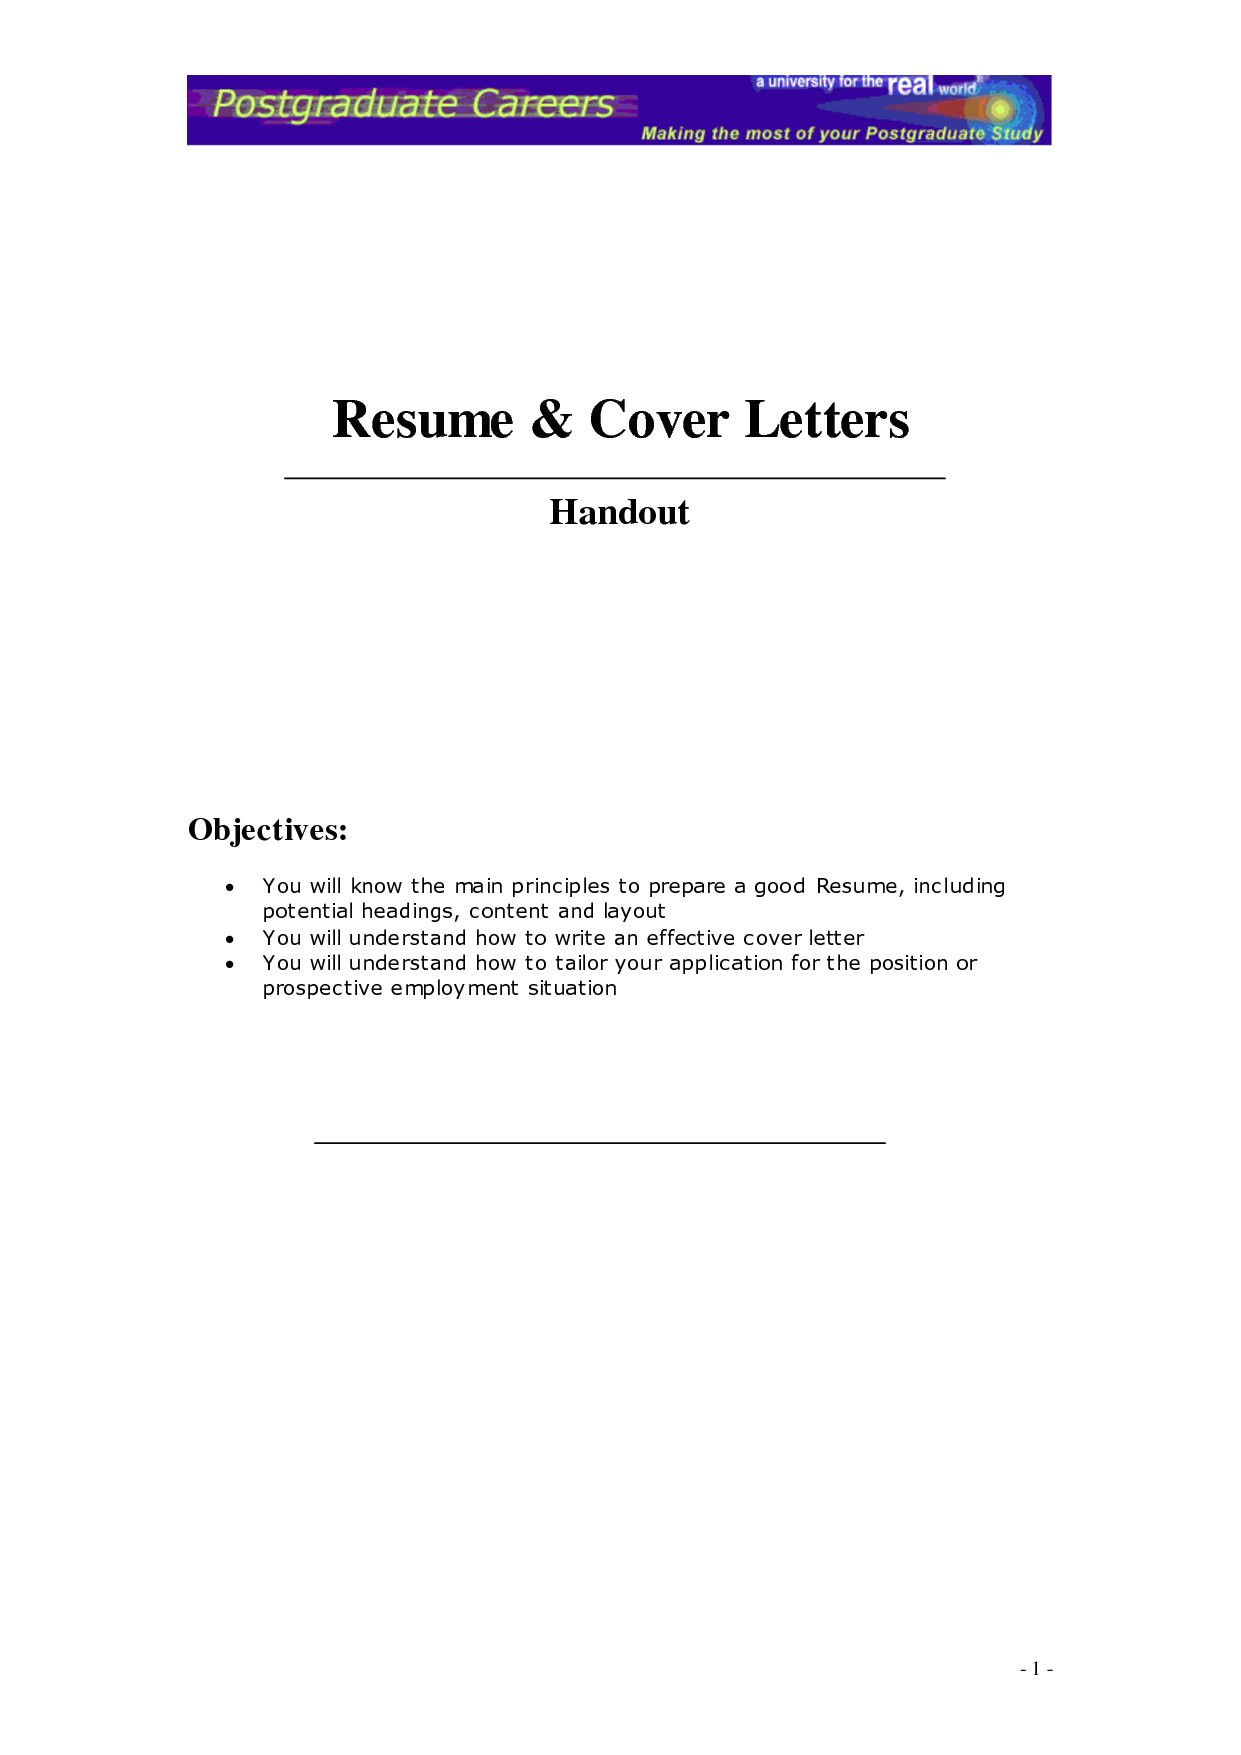 Hot to Make A Cover Letter Help Writing A Good Cover Letter